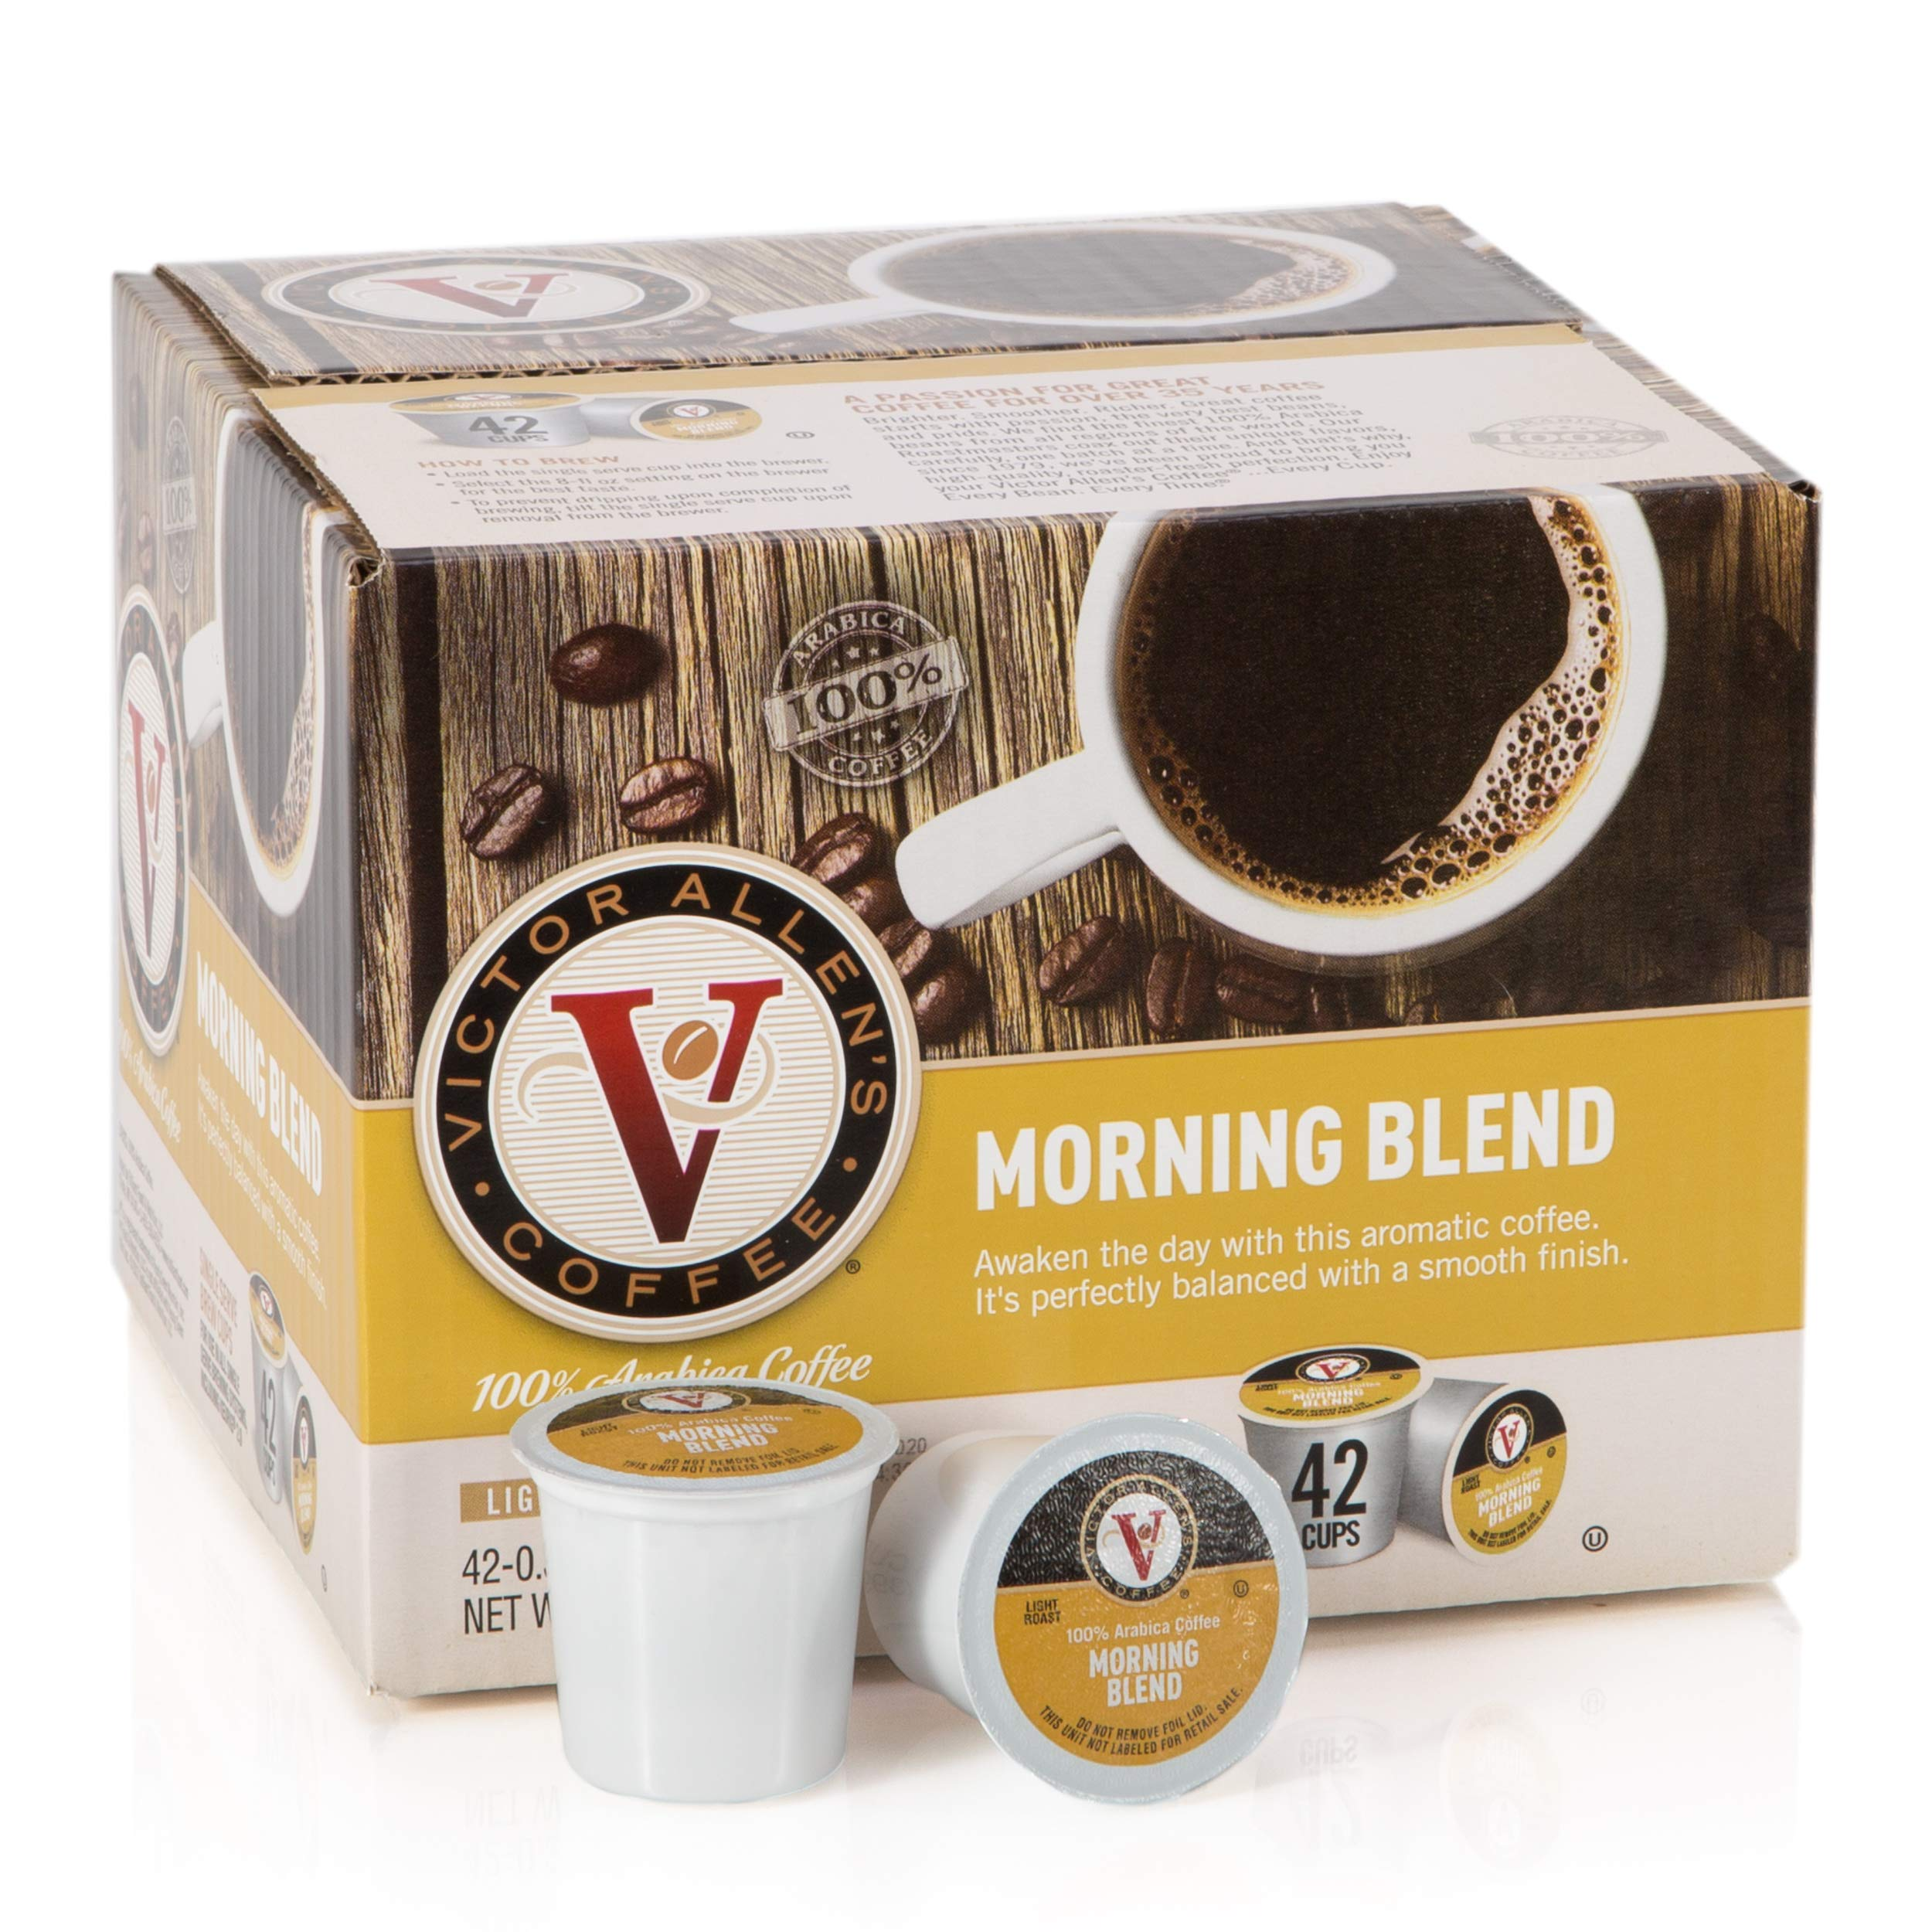 Victor Allens Coffee K Cups, Morning Blend Single Light Roast Coffee, 42 Count,